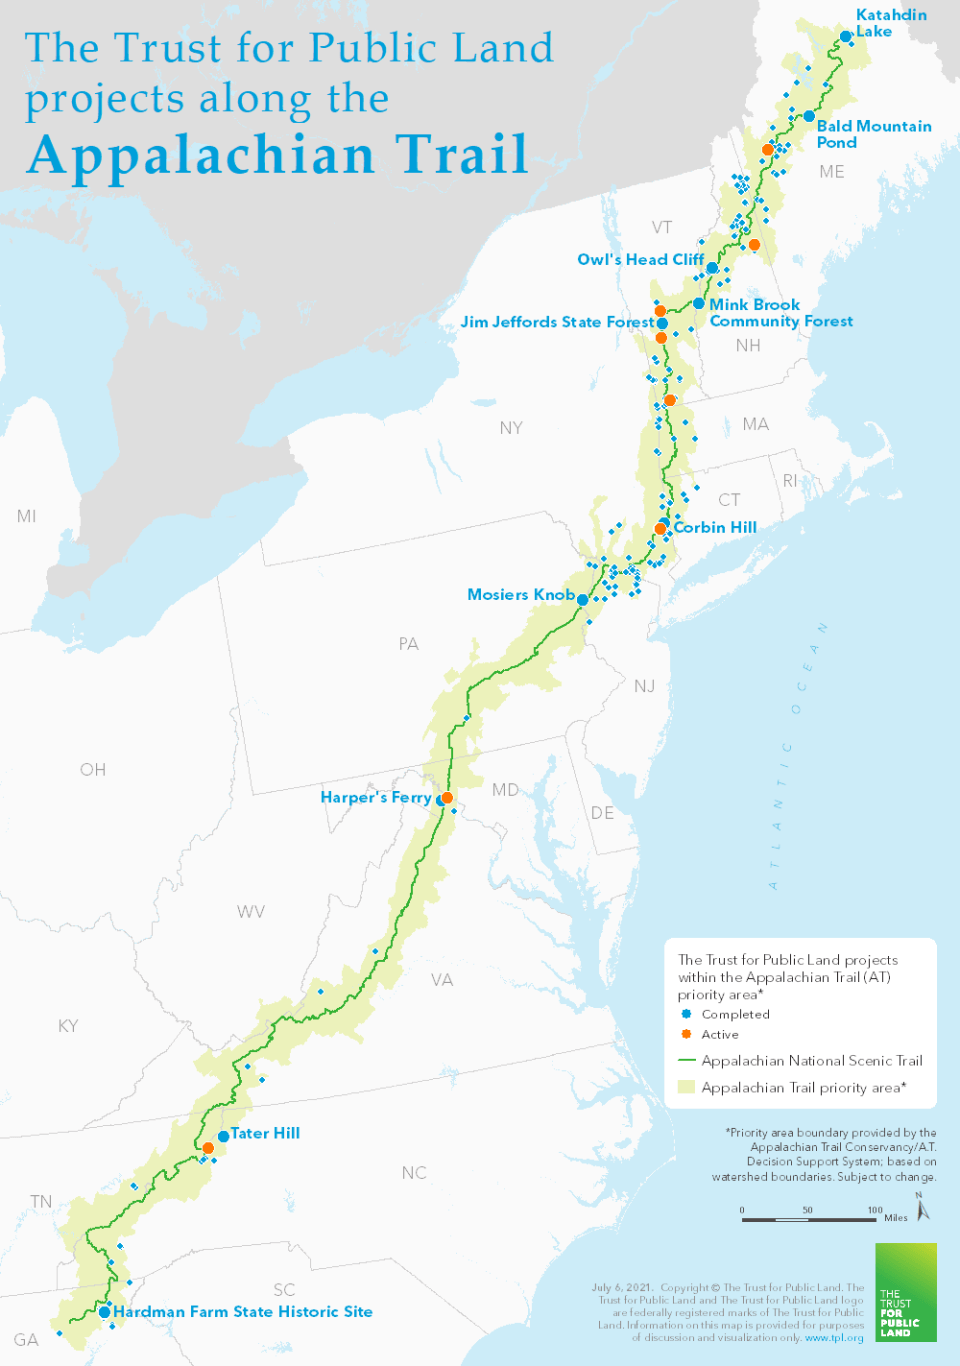 A map of places along the Appalachian Trail protected by The Trust for Public Land